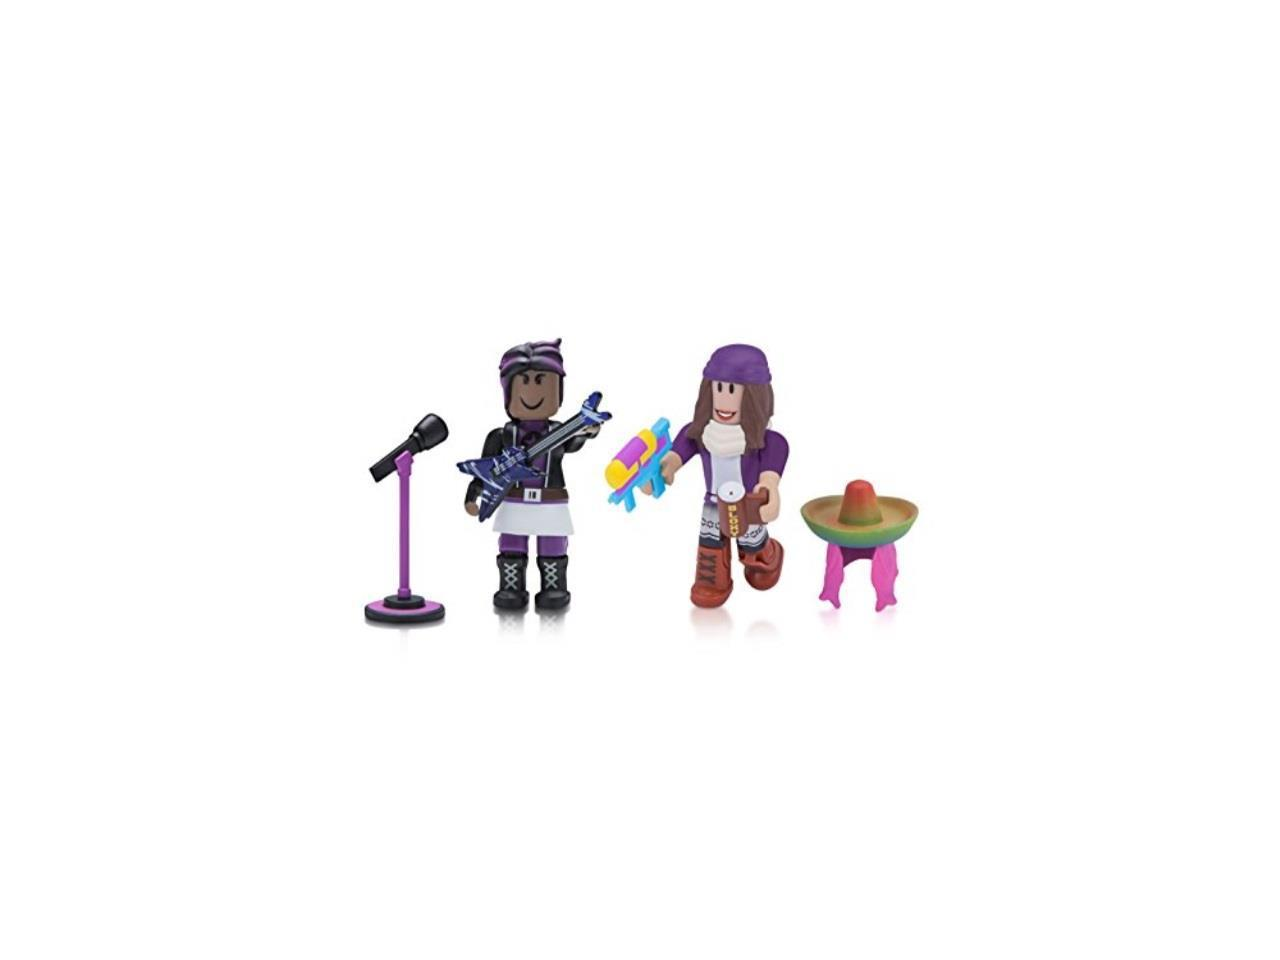 Playing Roblox High School Roblox Celebrity Collection Wild Starr And Roblox High School Spring Break Two Figure Pack Newegg Com